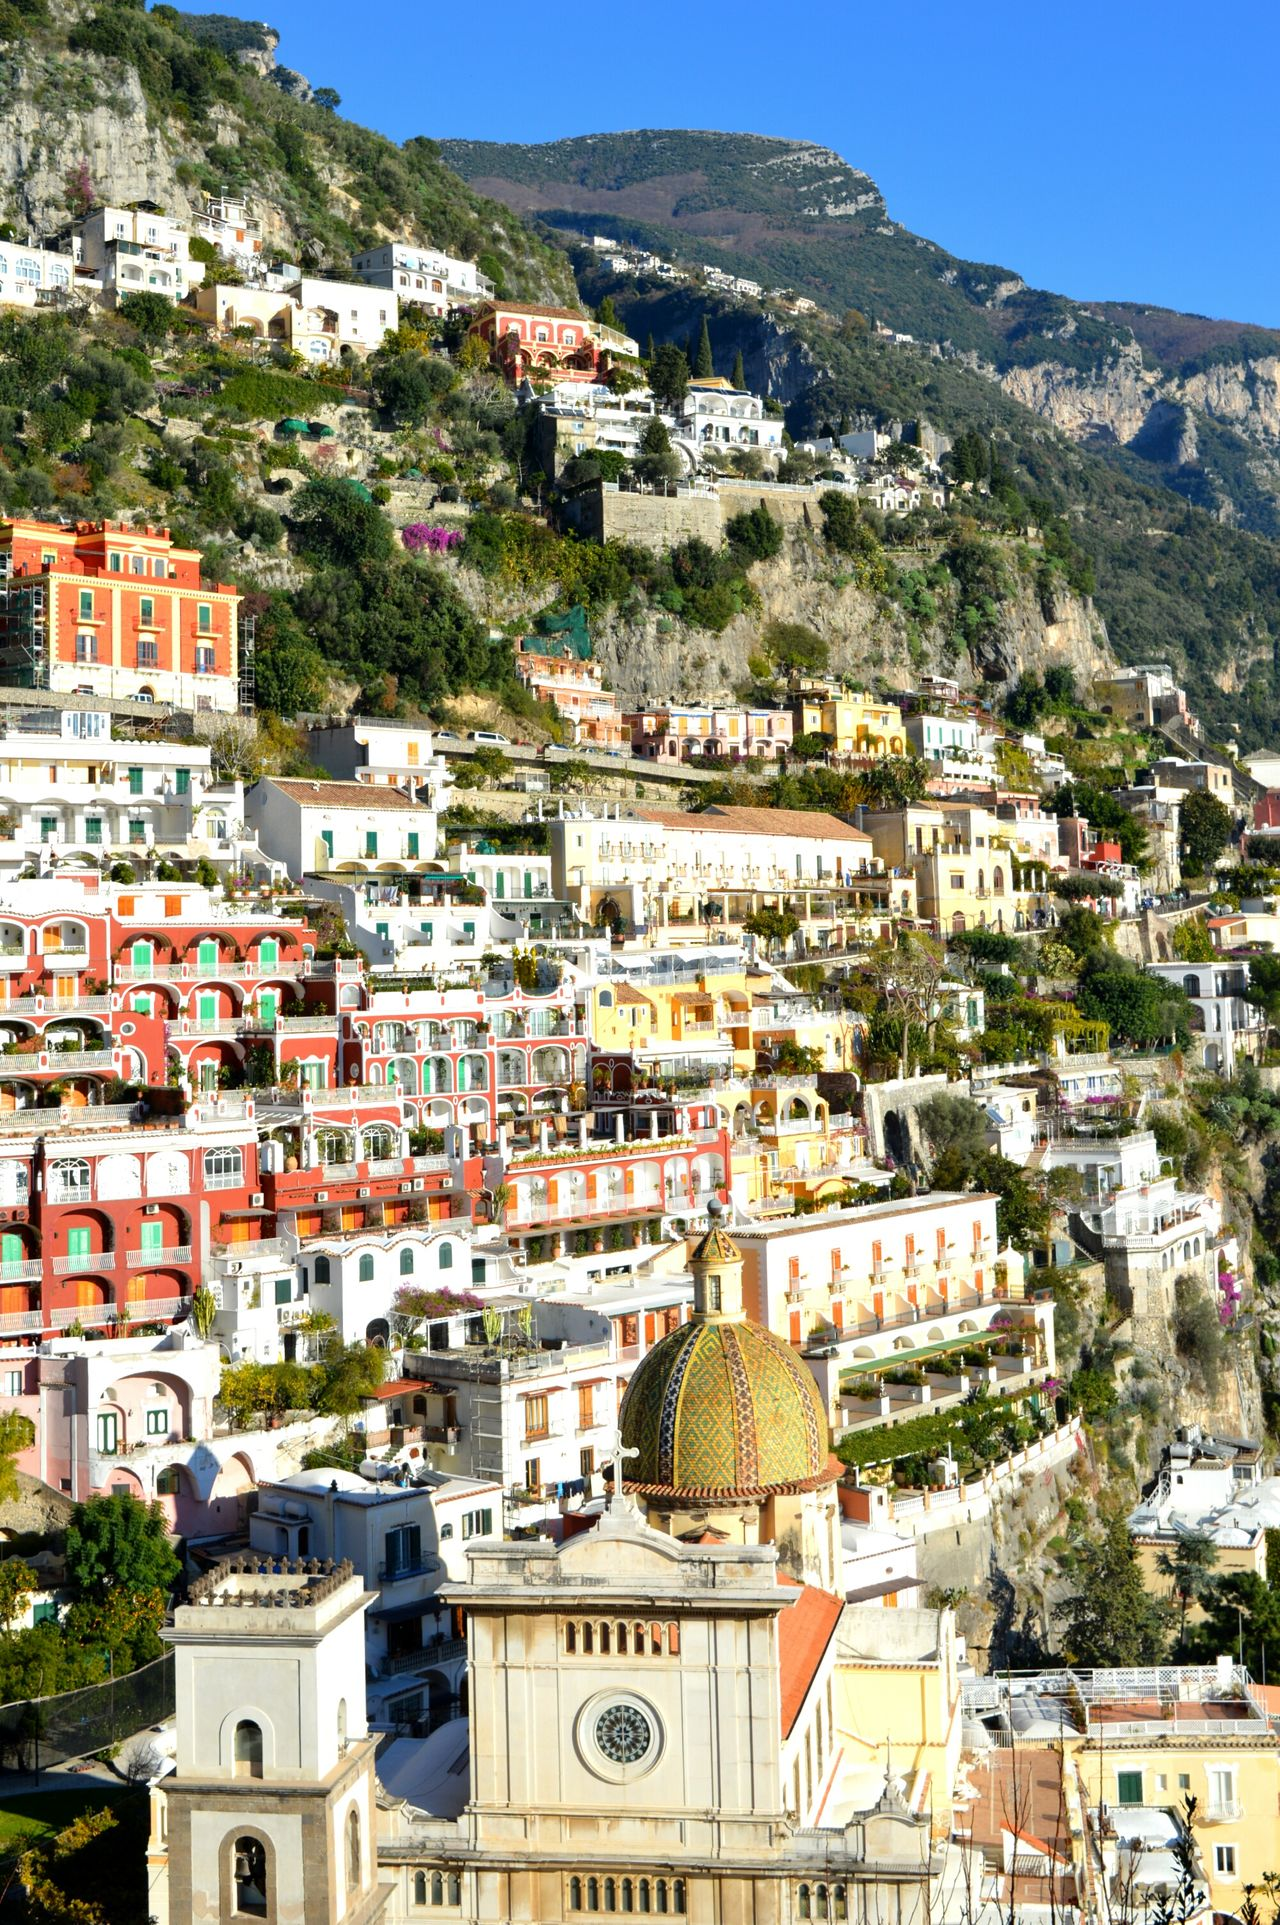 Church Cityscape Building Exterior Architecture Travel Destinations City Residential Building Town Built Structure Crowded House Sky Outdoors Urban Skyline Business Finance And Industry Day Urban Sprawl Tree Community People Landscape Amalfi  Amalfi  Italy Amalfi  Amalfi